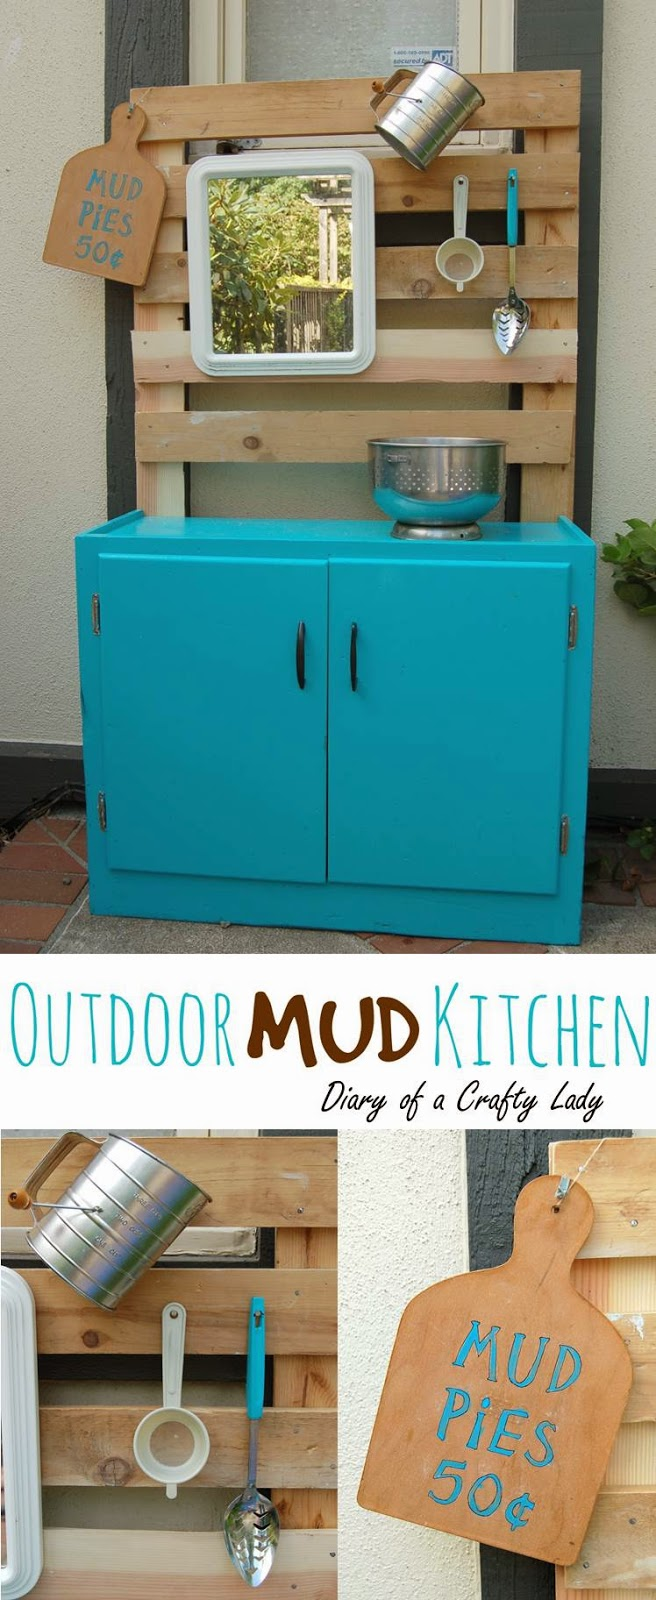 Diary of a Crafty Lady: Outdoor Play Mud Kitchen